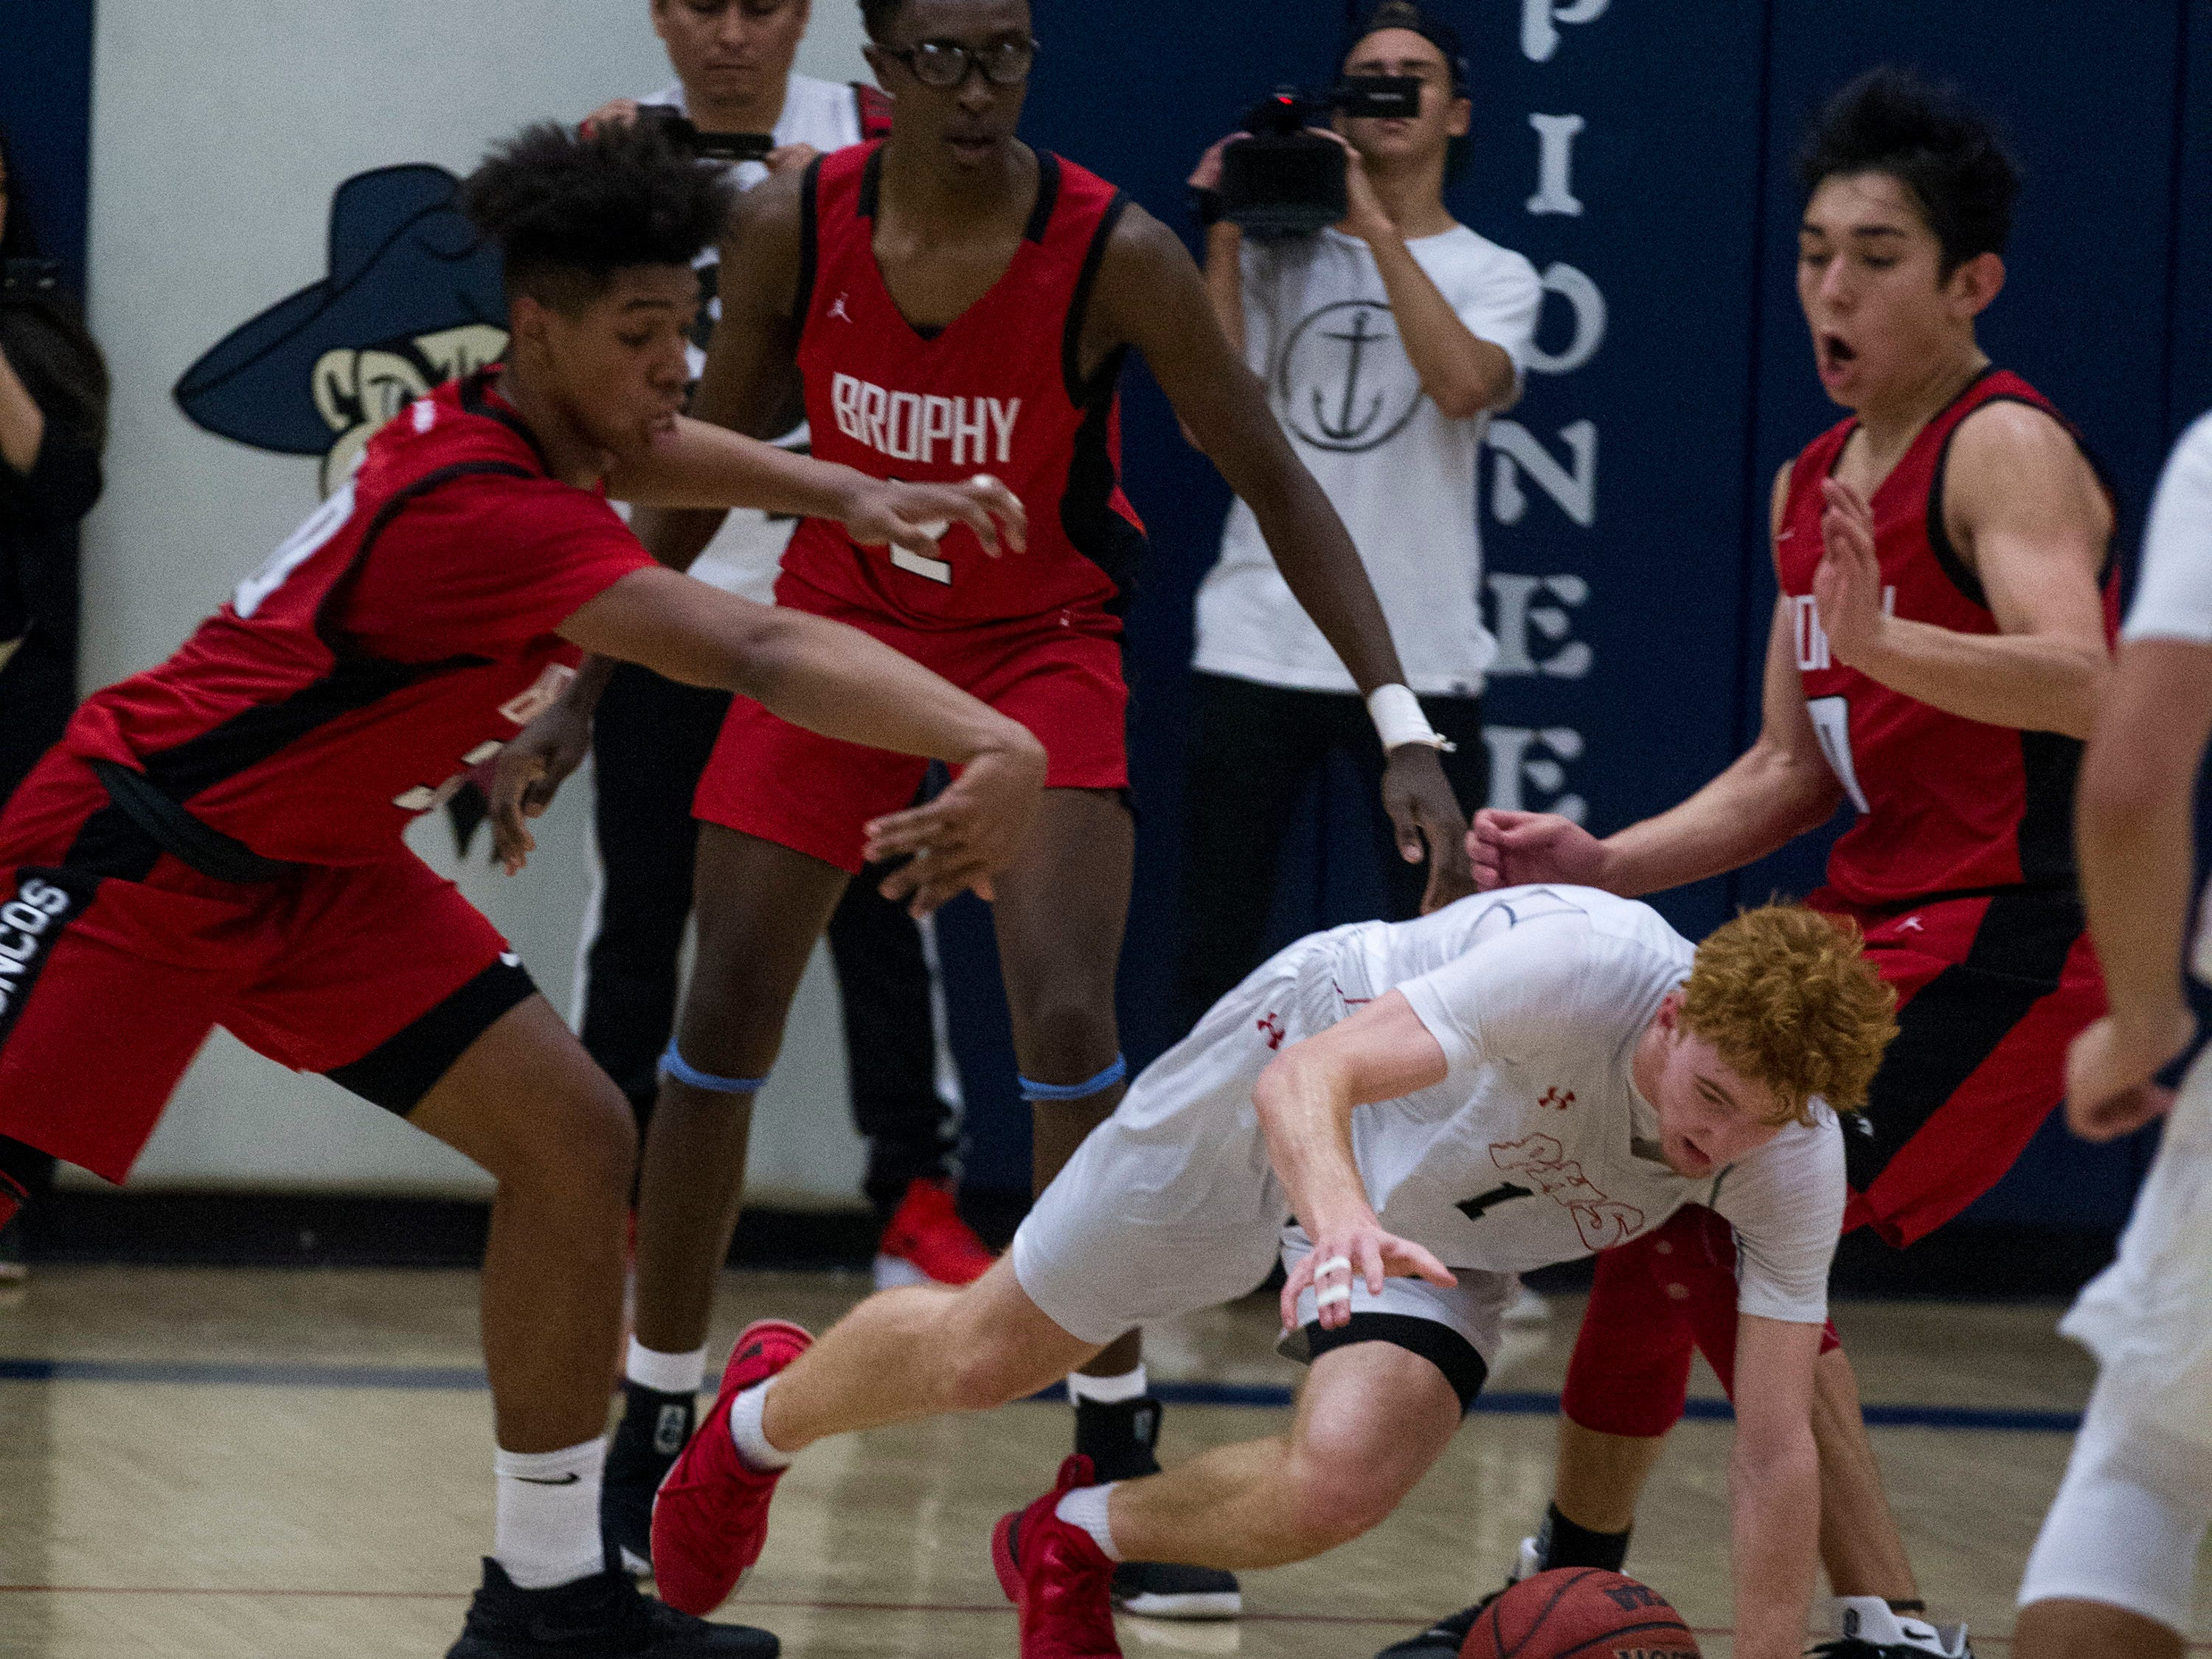 Pinnacle's Nico Mannion (1) gets out of trouble after being surrounded by three Brophy players during their game in Phoenix, Friday, Dec. 21, 2018.